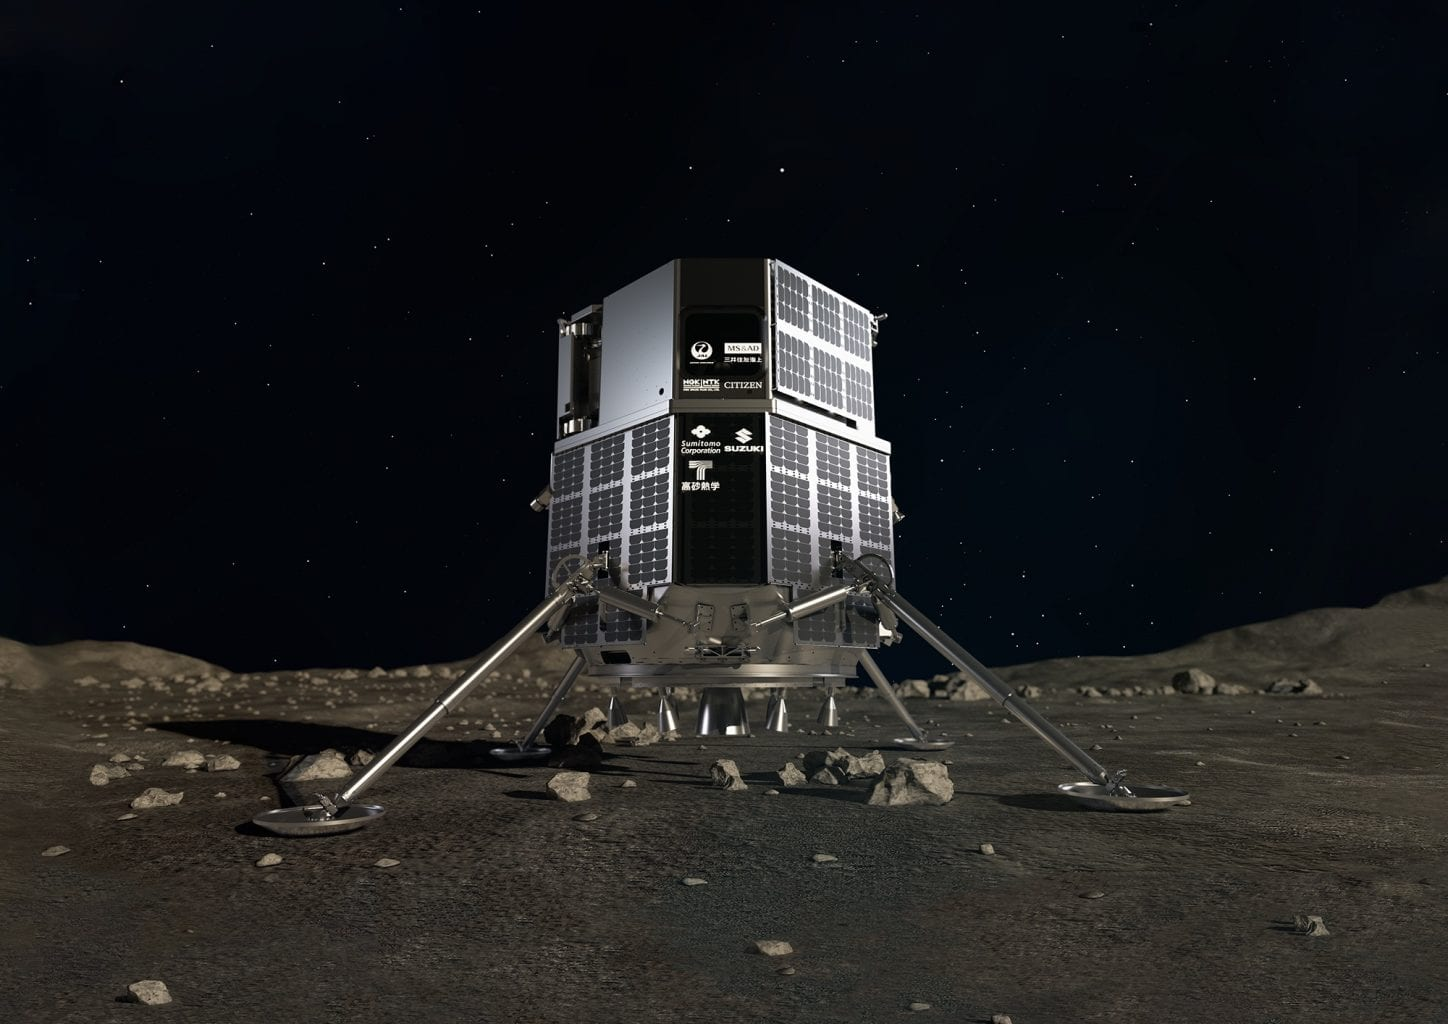 Artist's impression of the HAKUTO-R moon lander which is scheduled for launch in 2022. It will be the debut launch of the private Japanese company ispace Inc. Credit: ispace